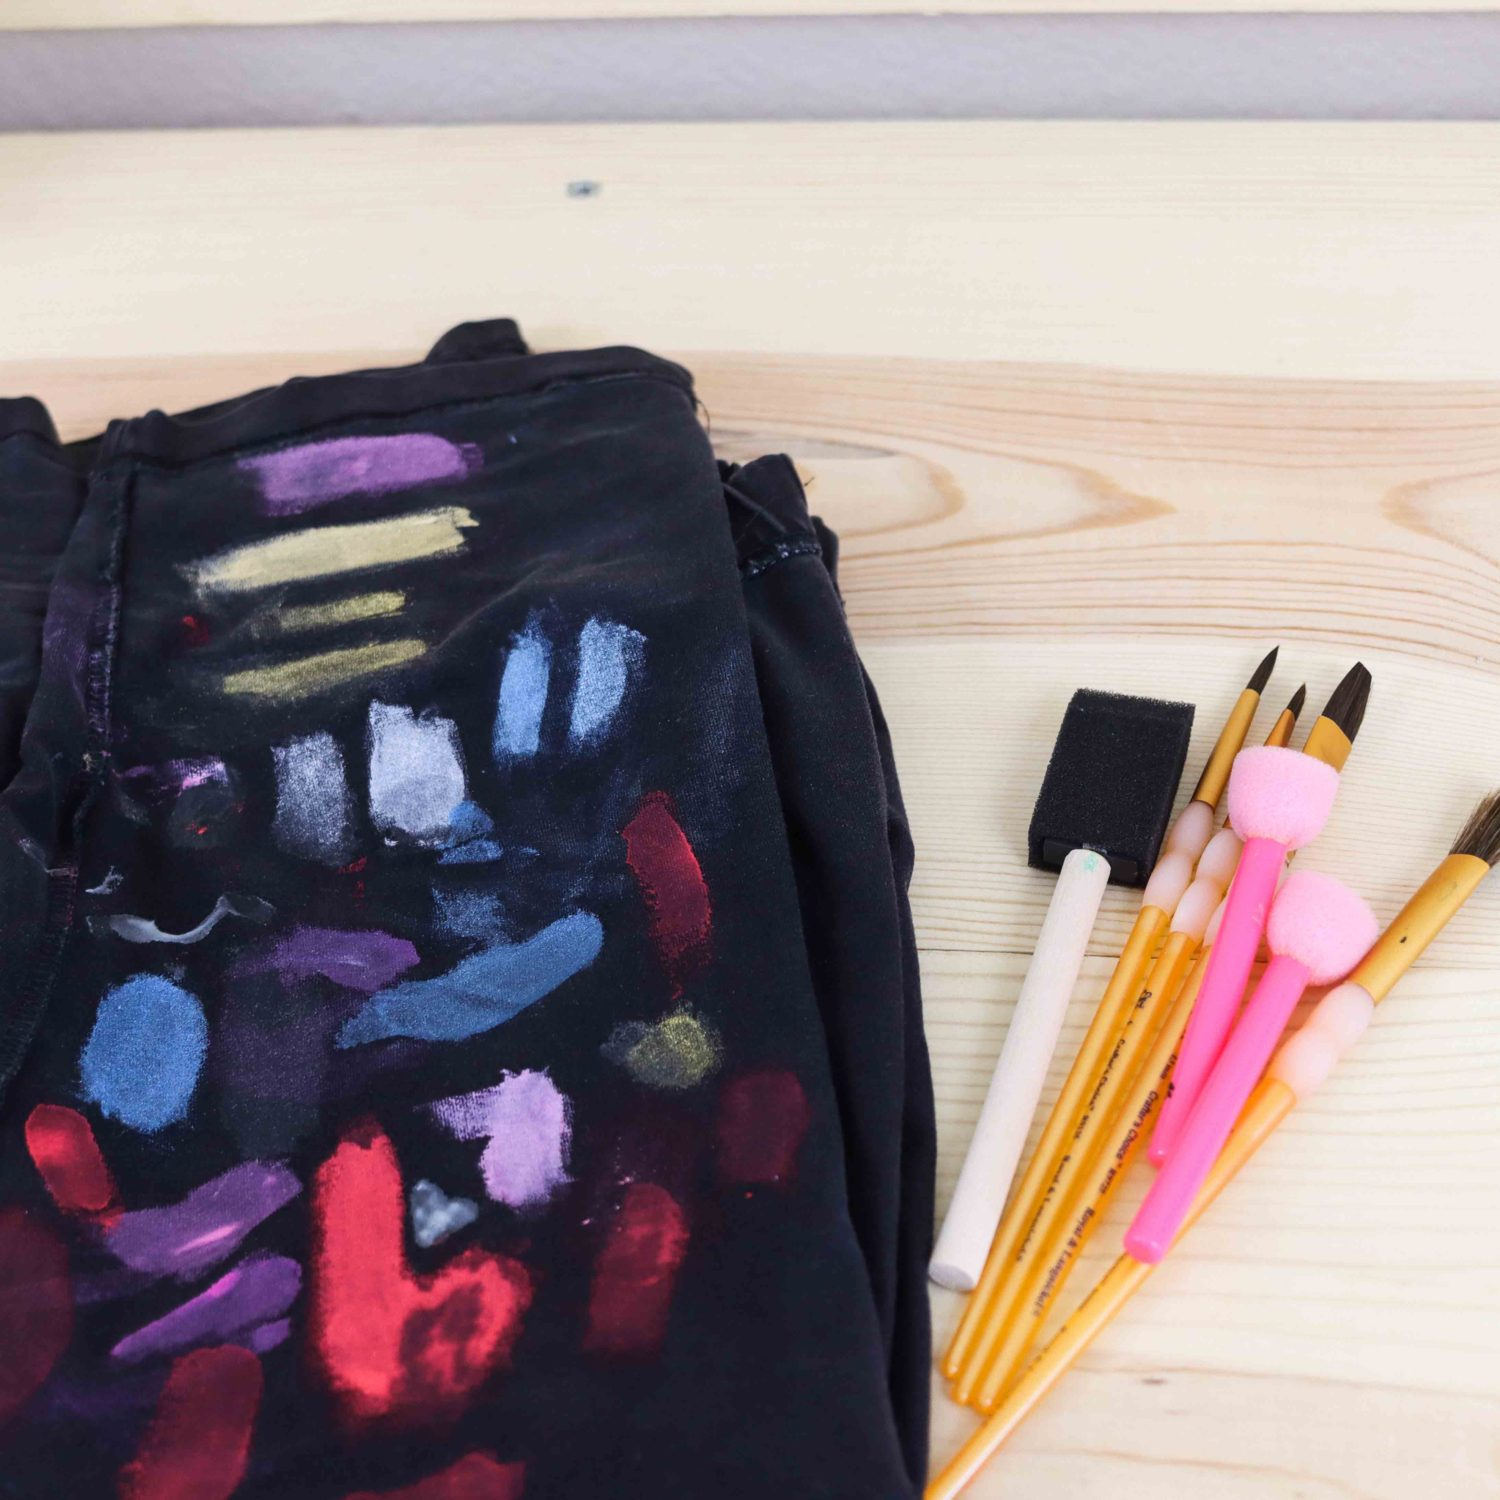 black fabric with multiple strokes of different types of fabric paint to see the pigment